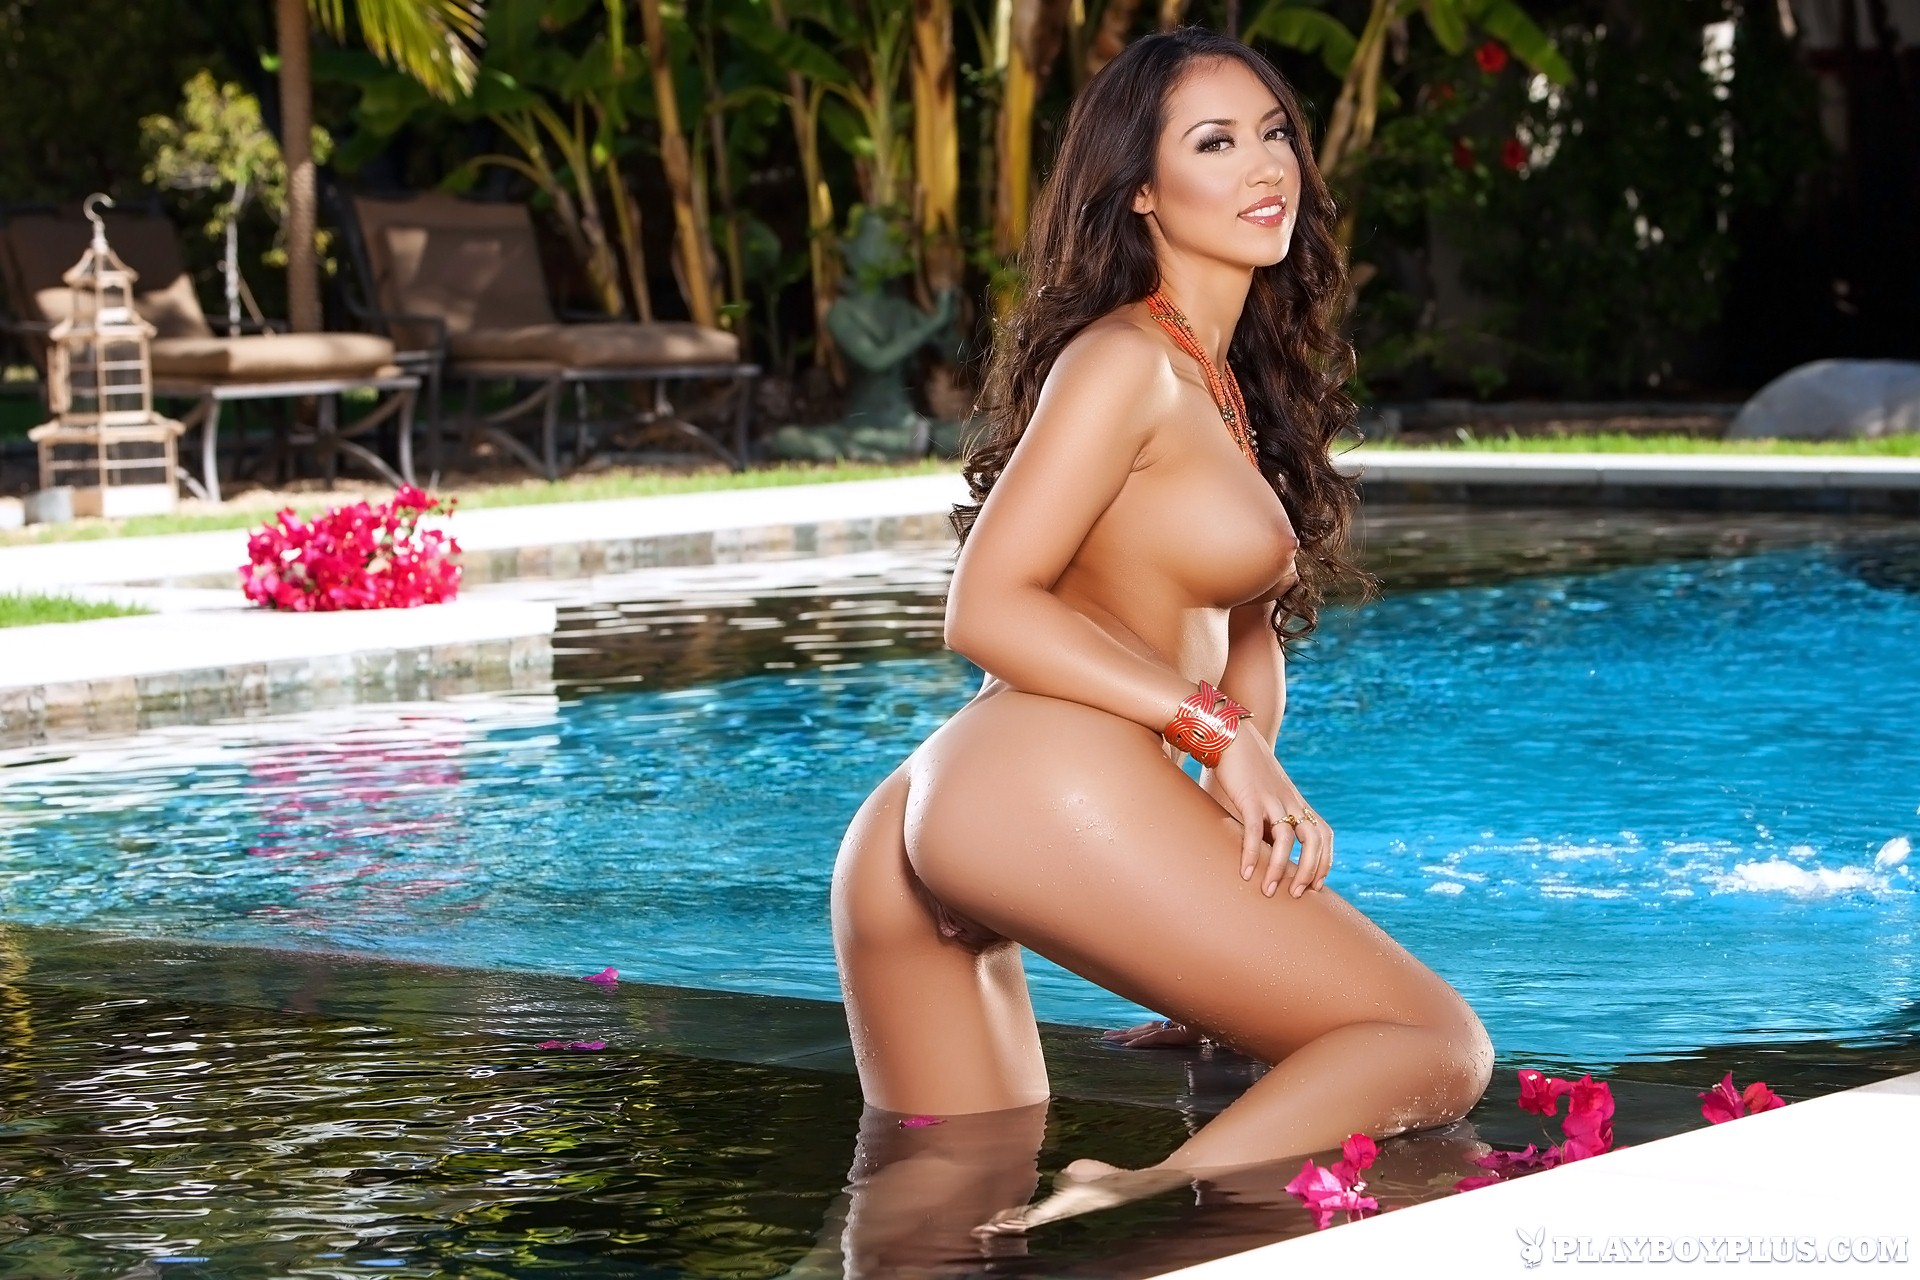 Playboy playmates swimming nude